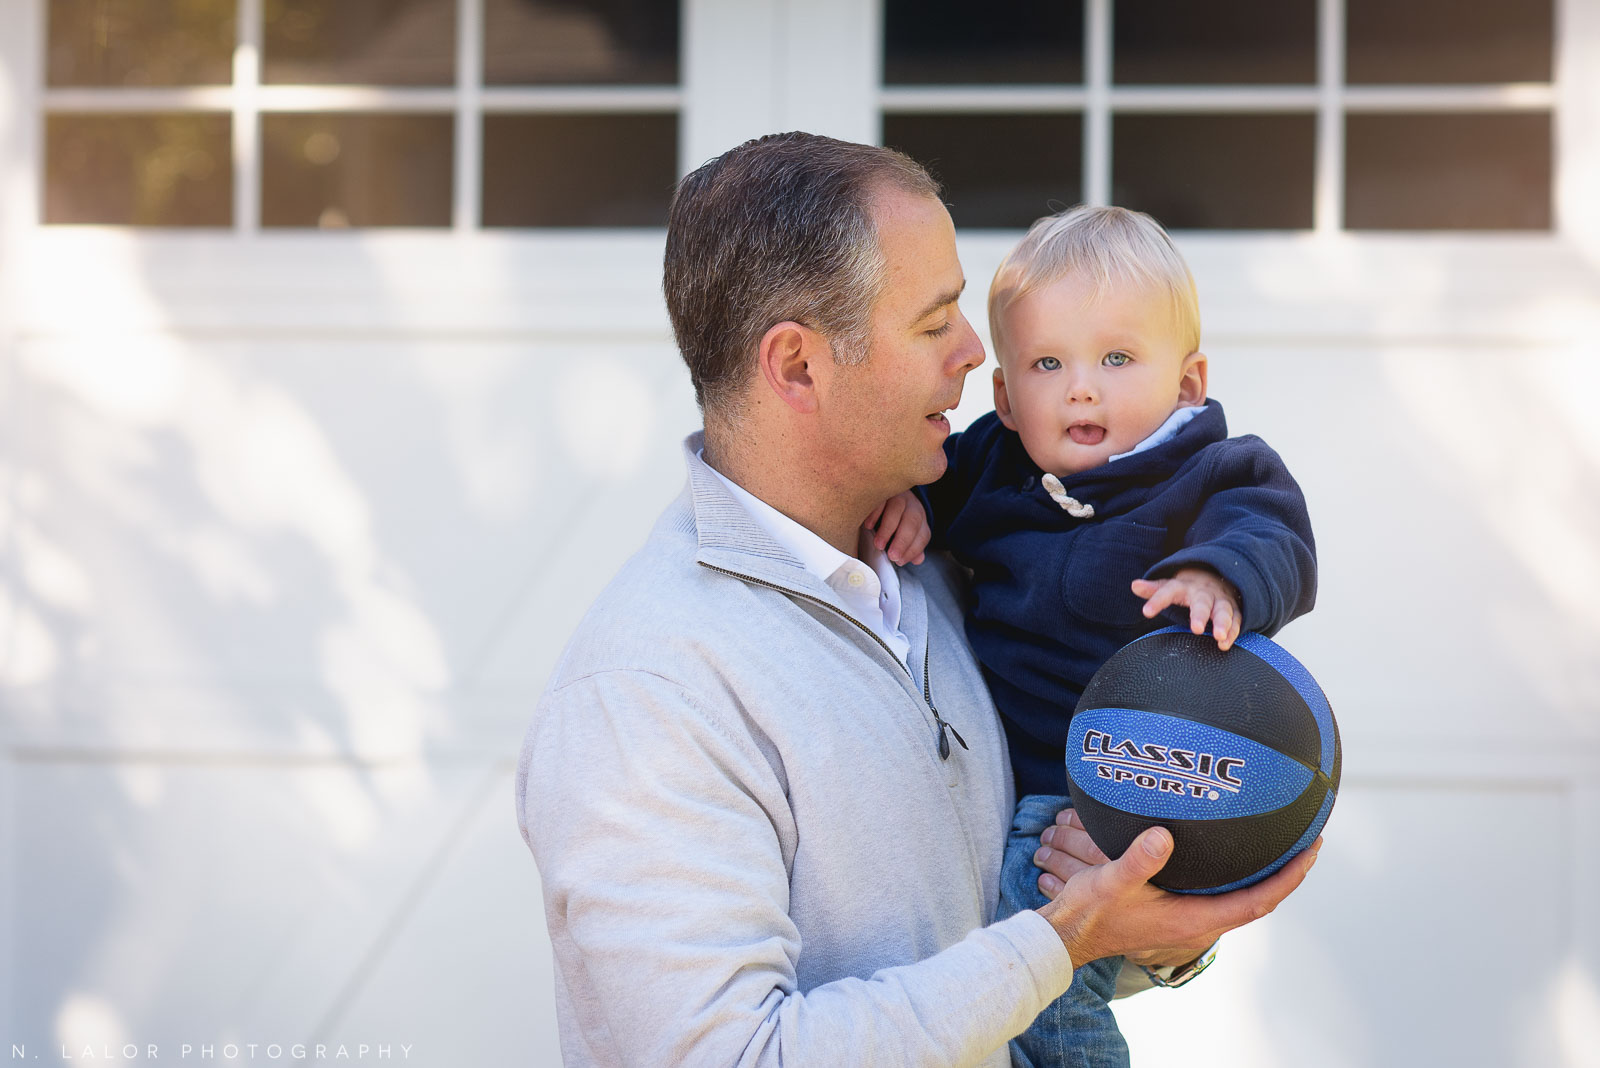 1-year old Son with Dad, playing basketball. Lifestyle portrait by N. Lalor Photography.